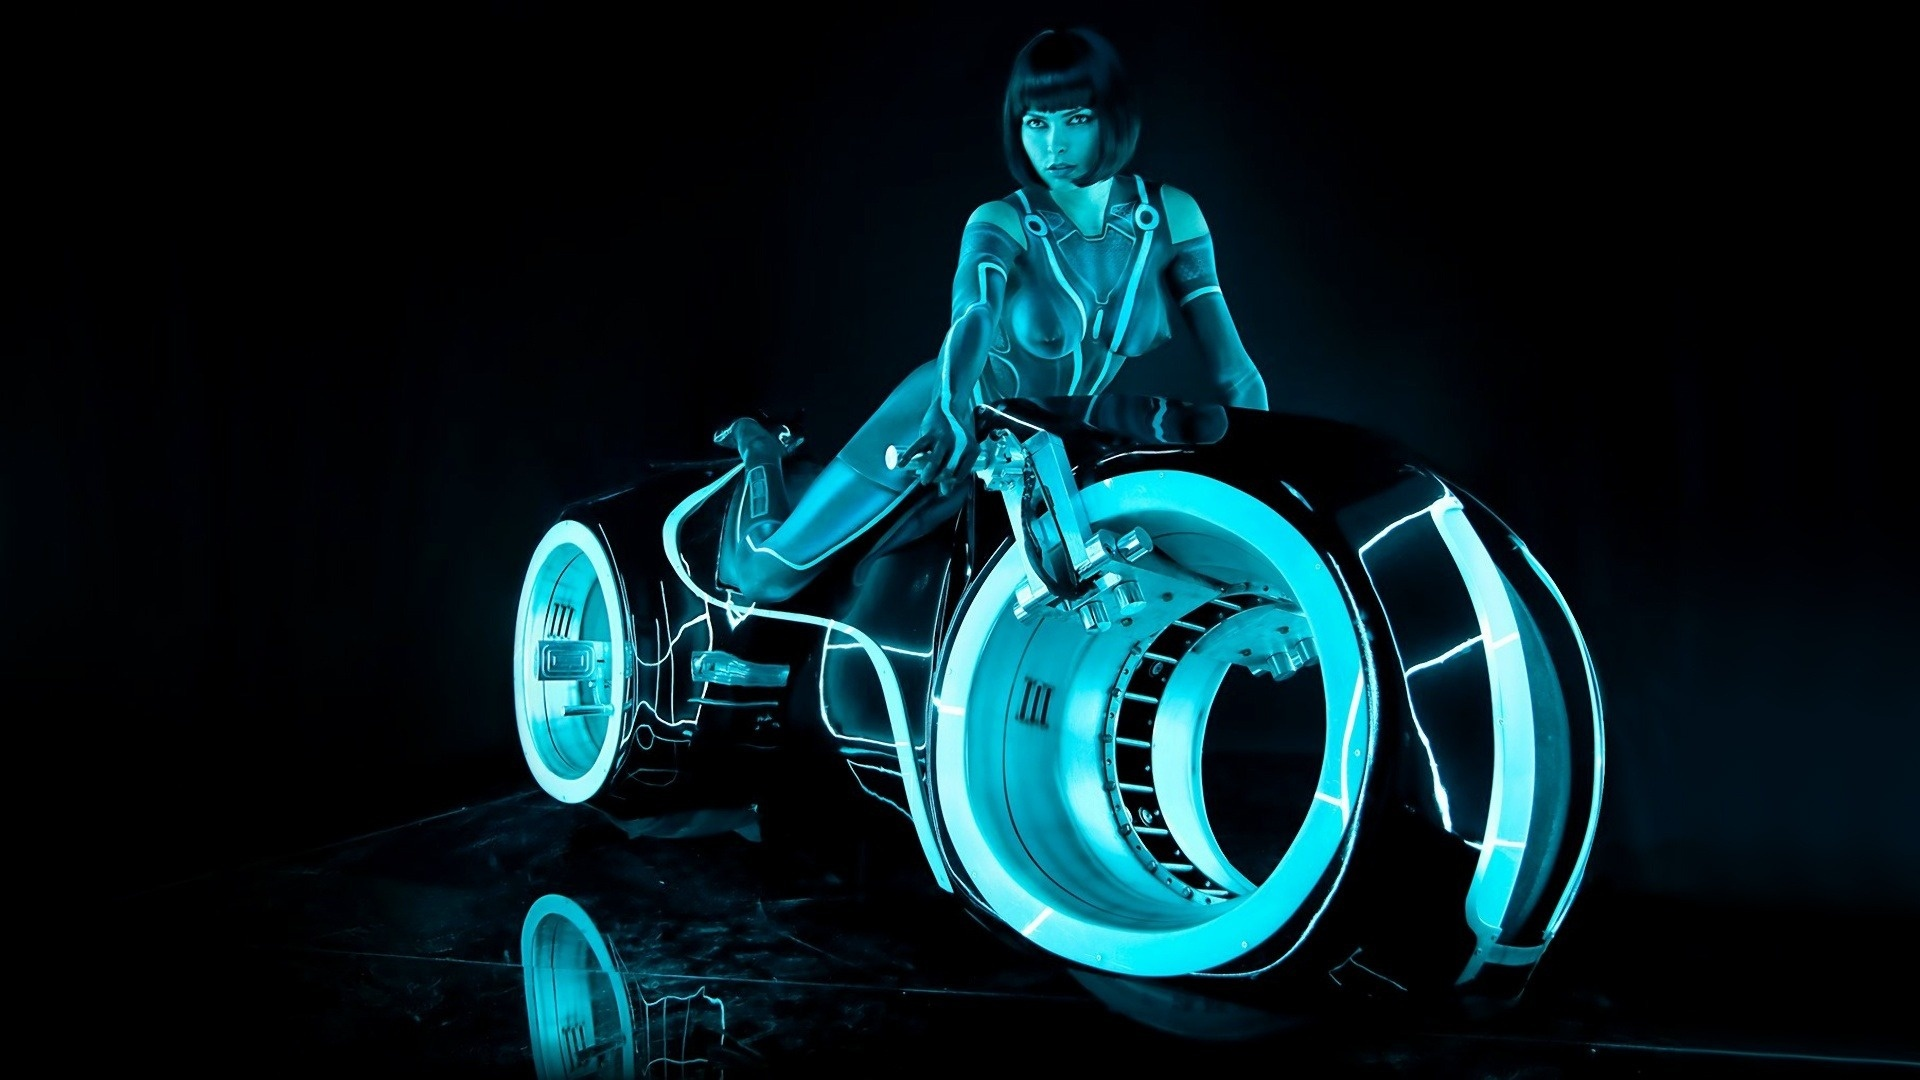 Tron 3 Has Officially Been Confirmed By Disney